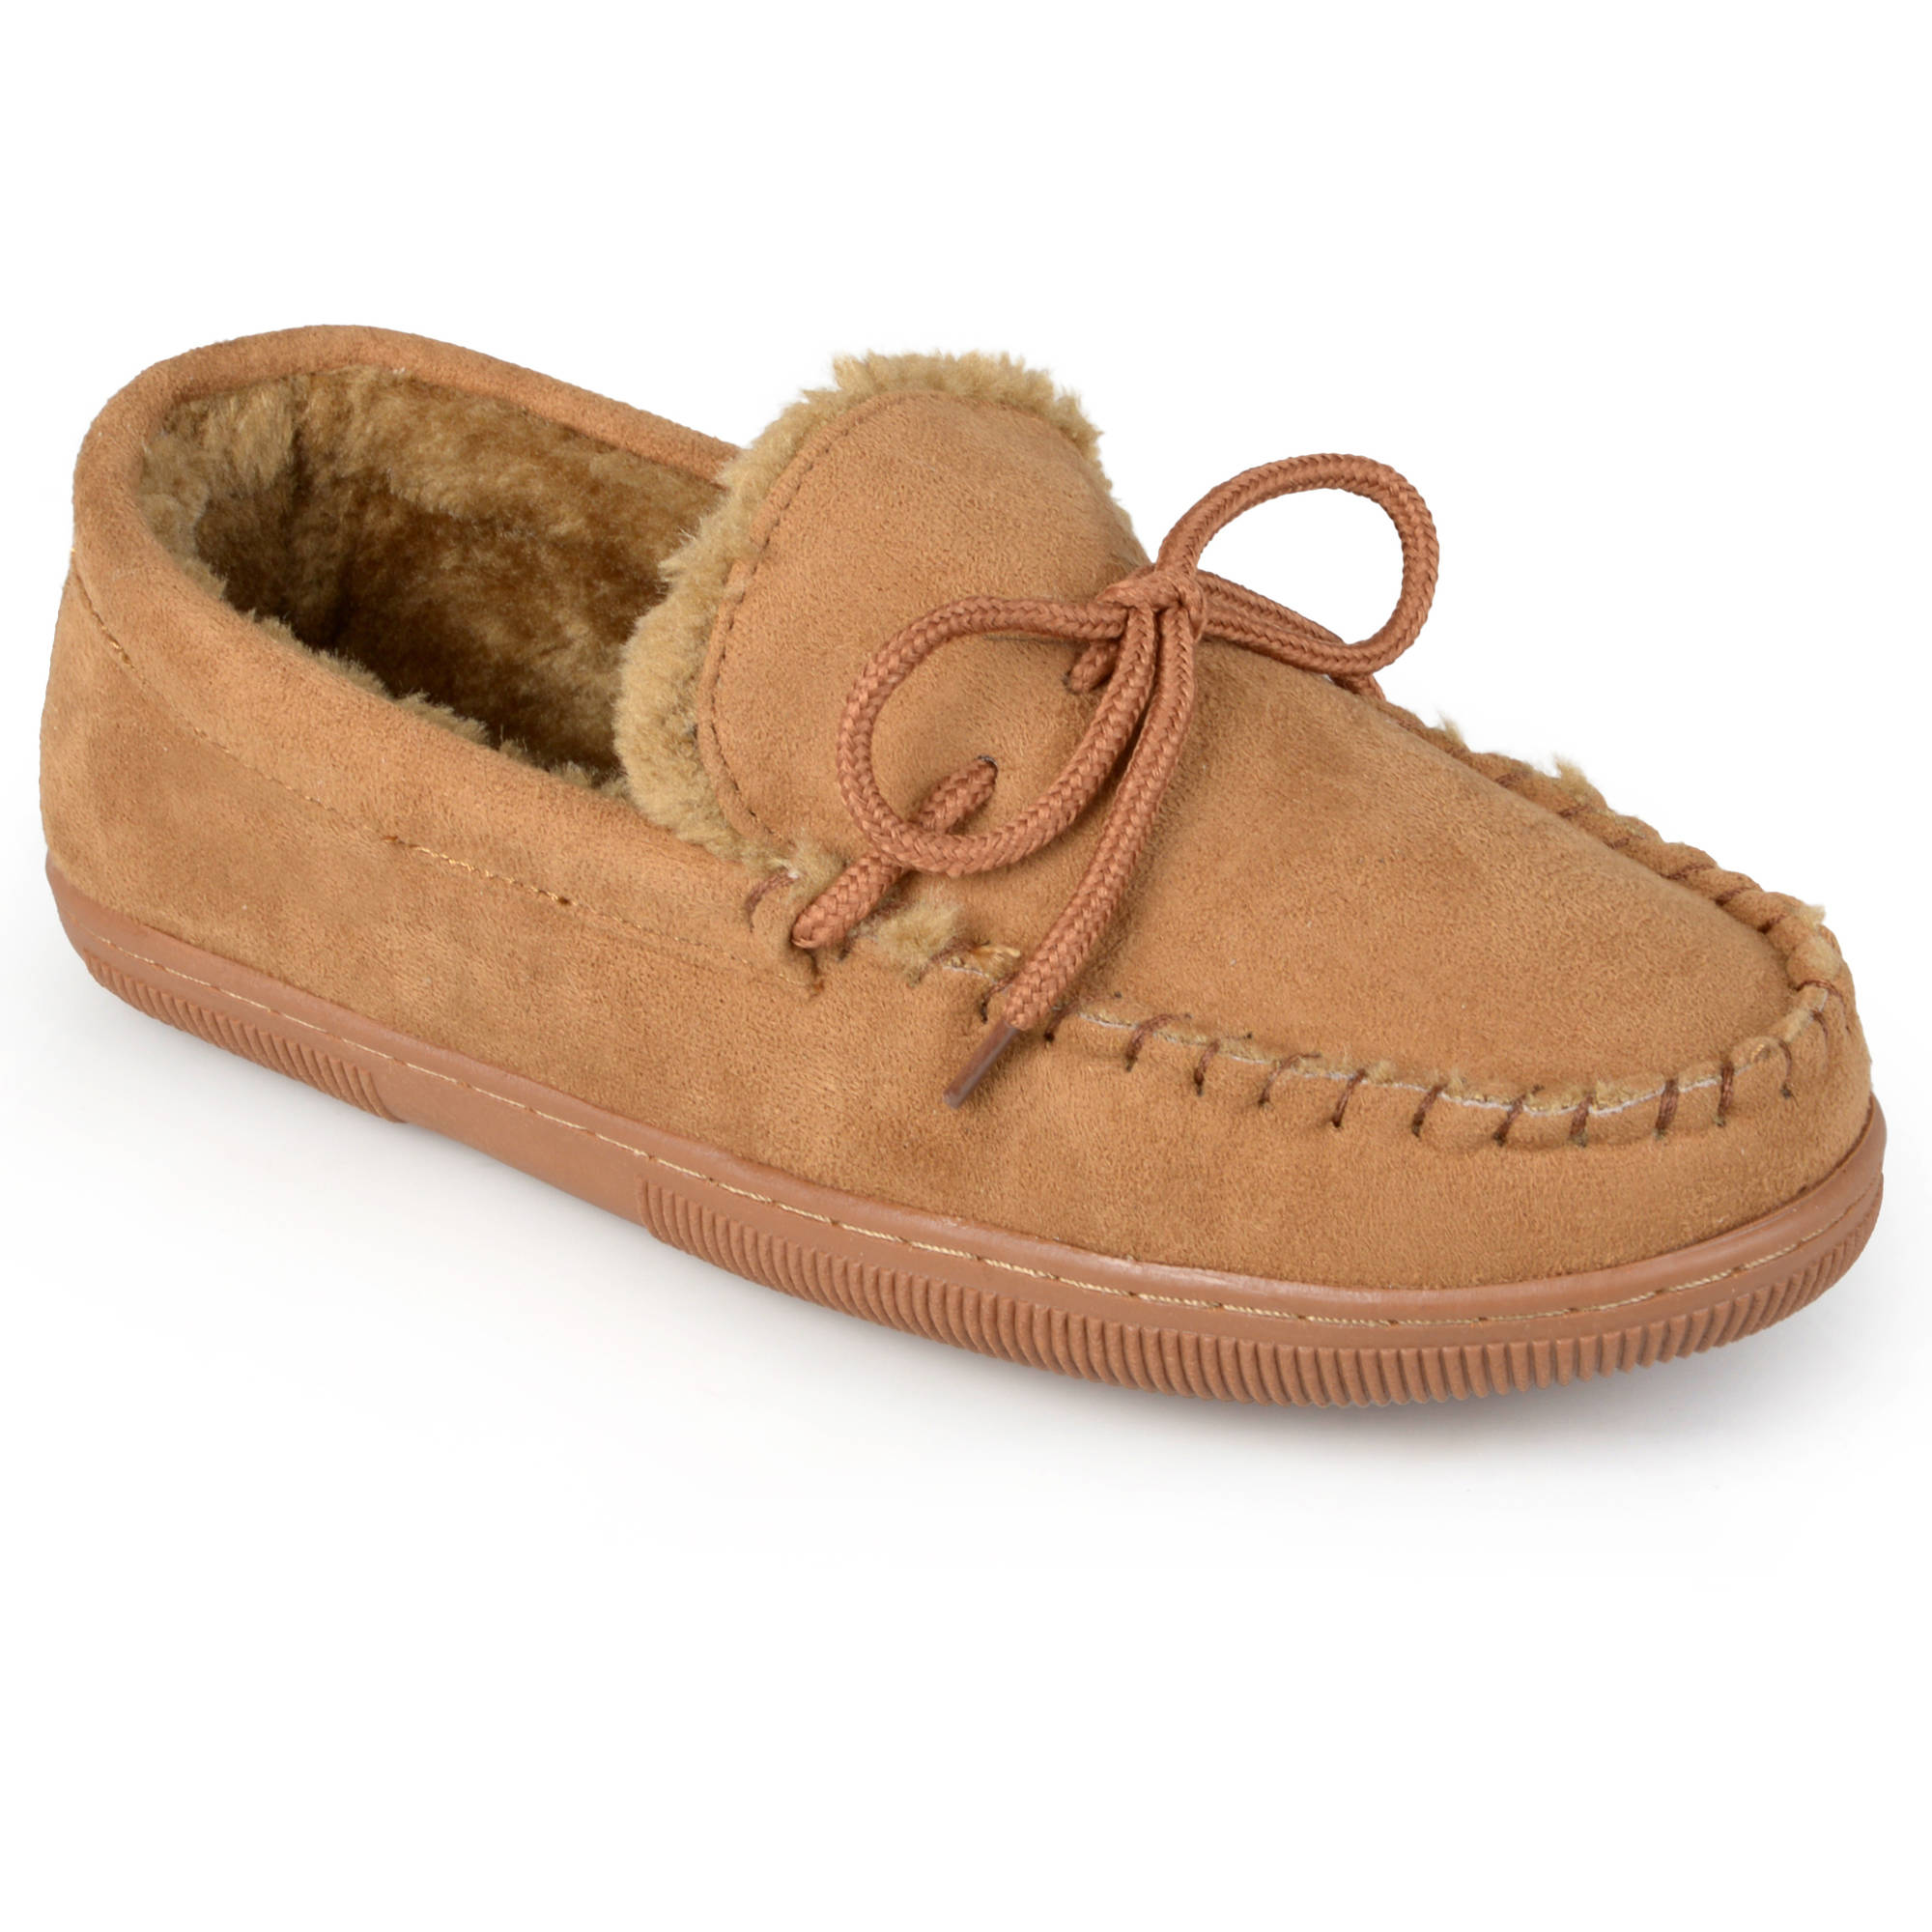 Pindari Men's Faux Suede Moccasin Slippers